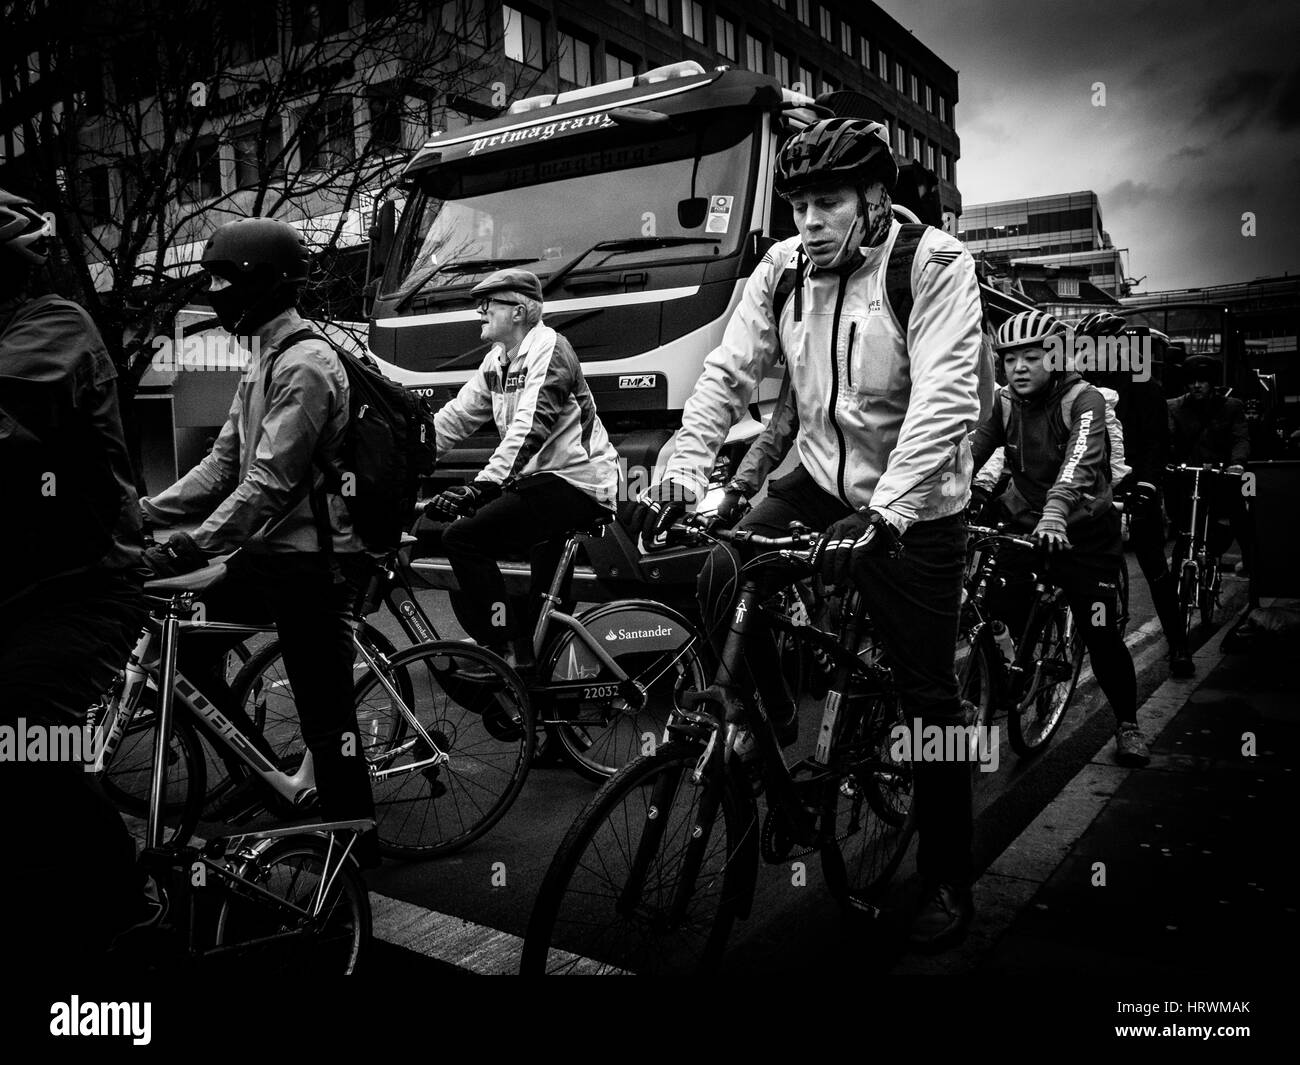 A cyclist, who looks like he's got the weight of the world on his shoulders, waits at traffic lights at London - Stock Image